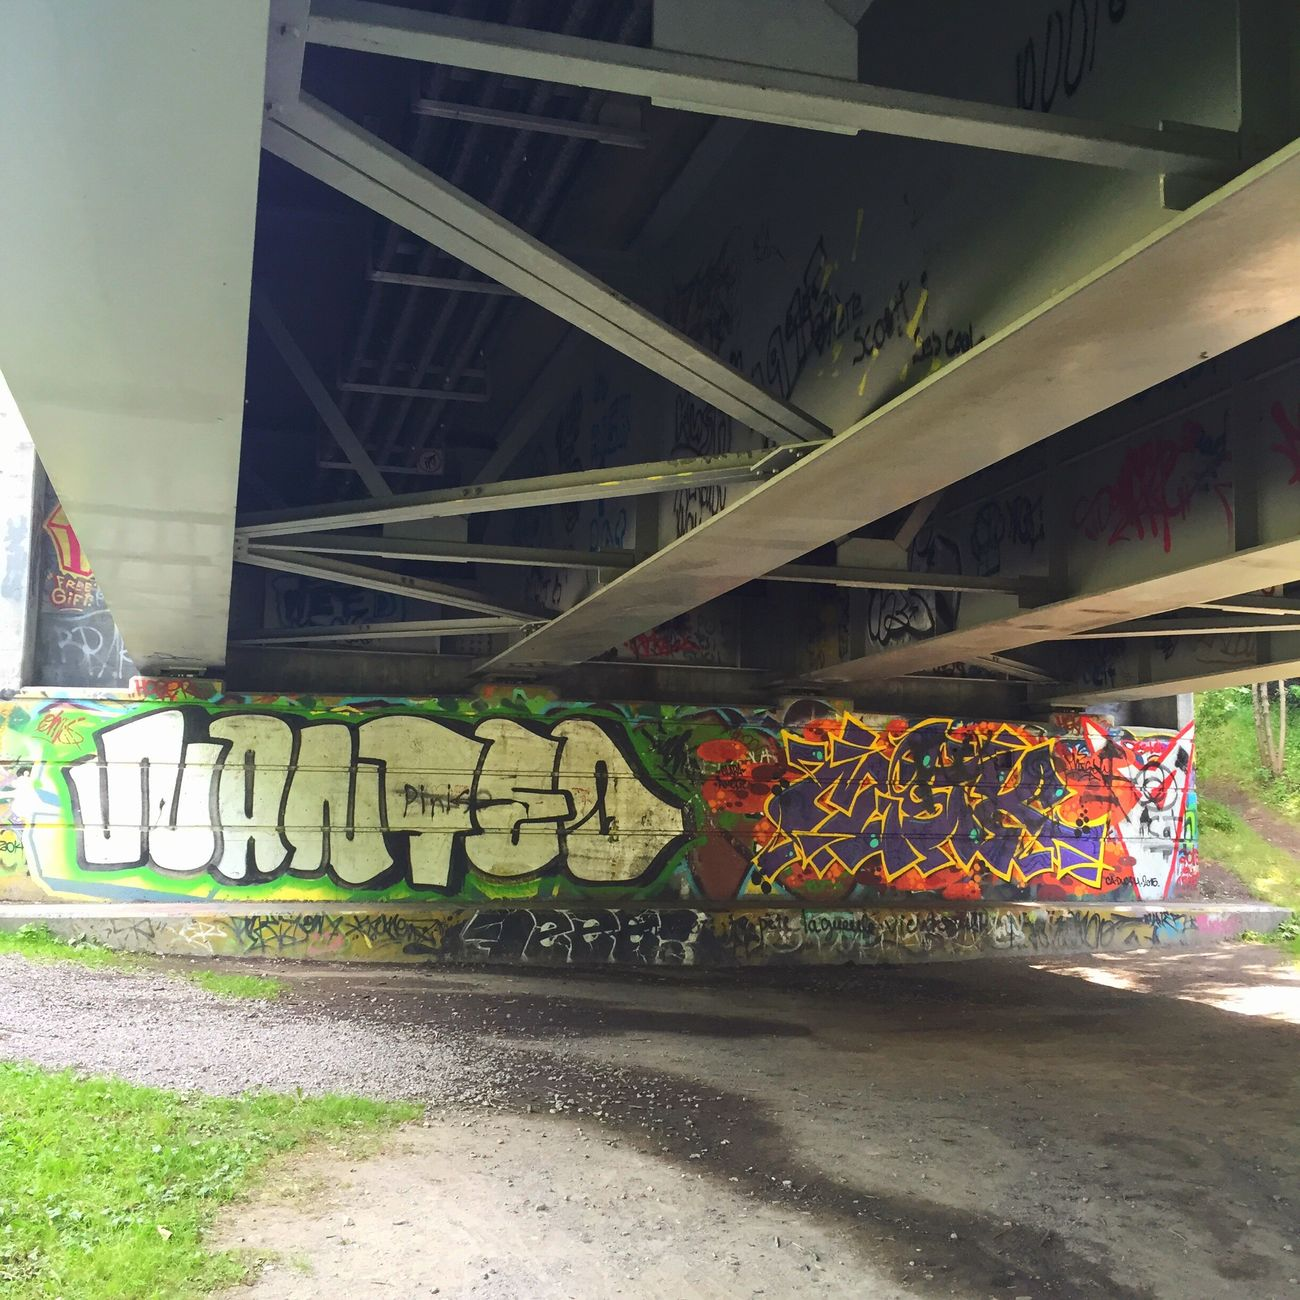 Underneath the bridge The tarp has sprung a leak... Graffiti